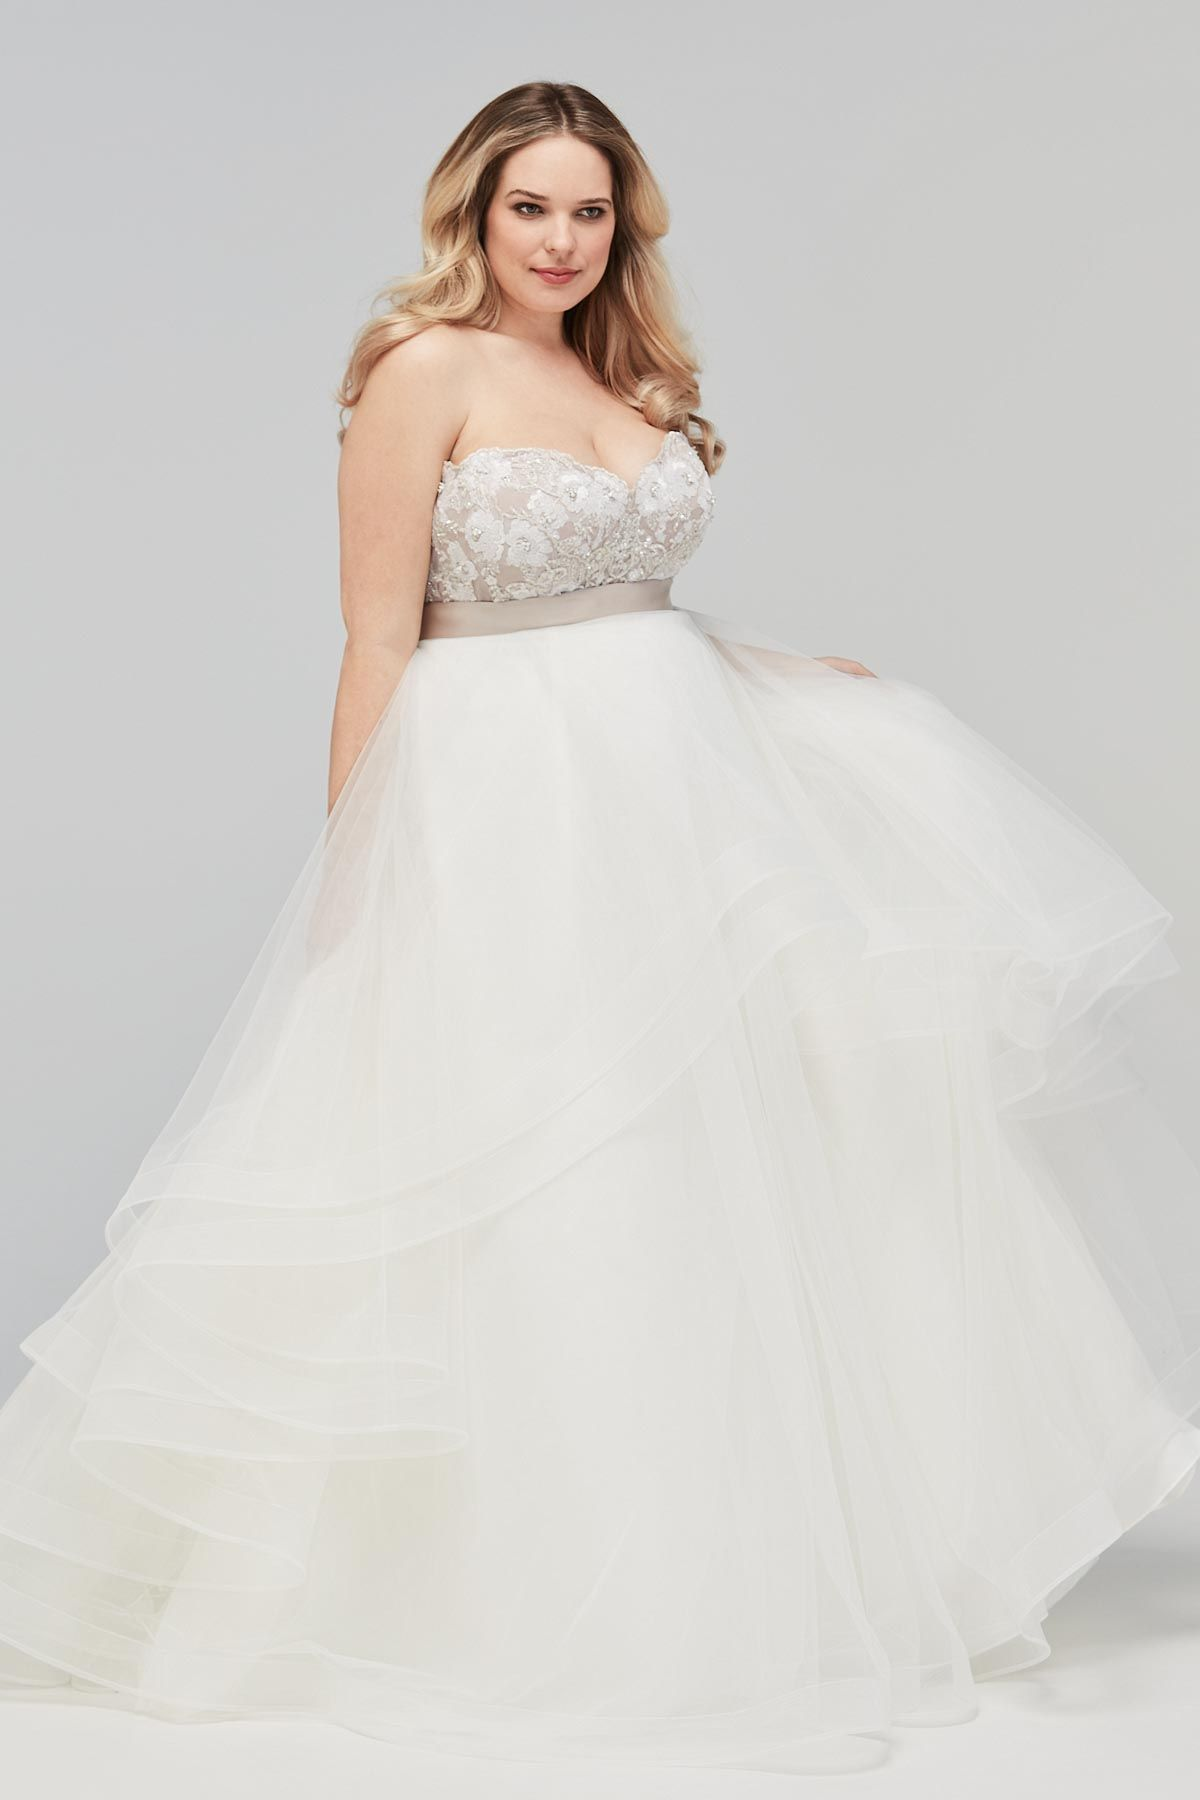 Plus Size Bridal Gown - the Maelin Corset with the Amira Skirt by ...